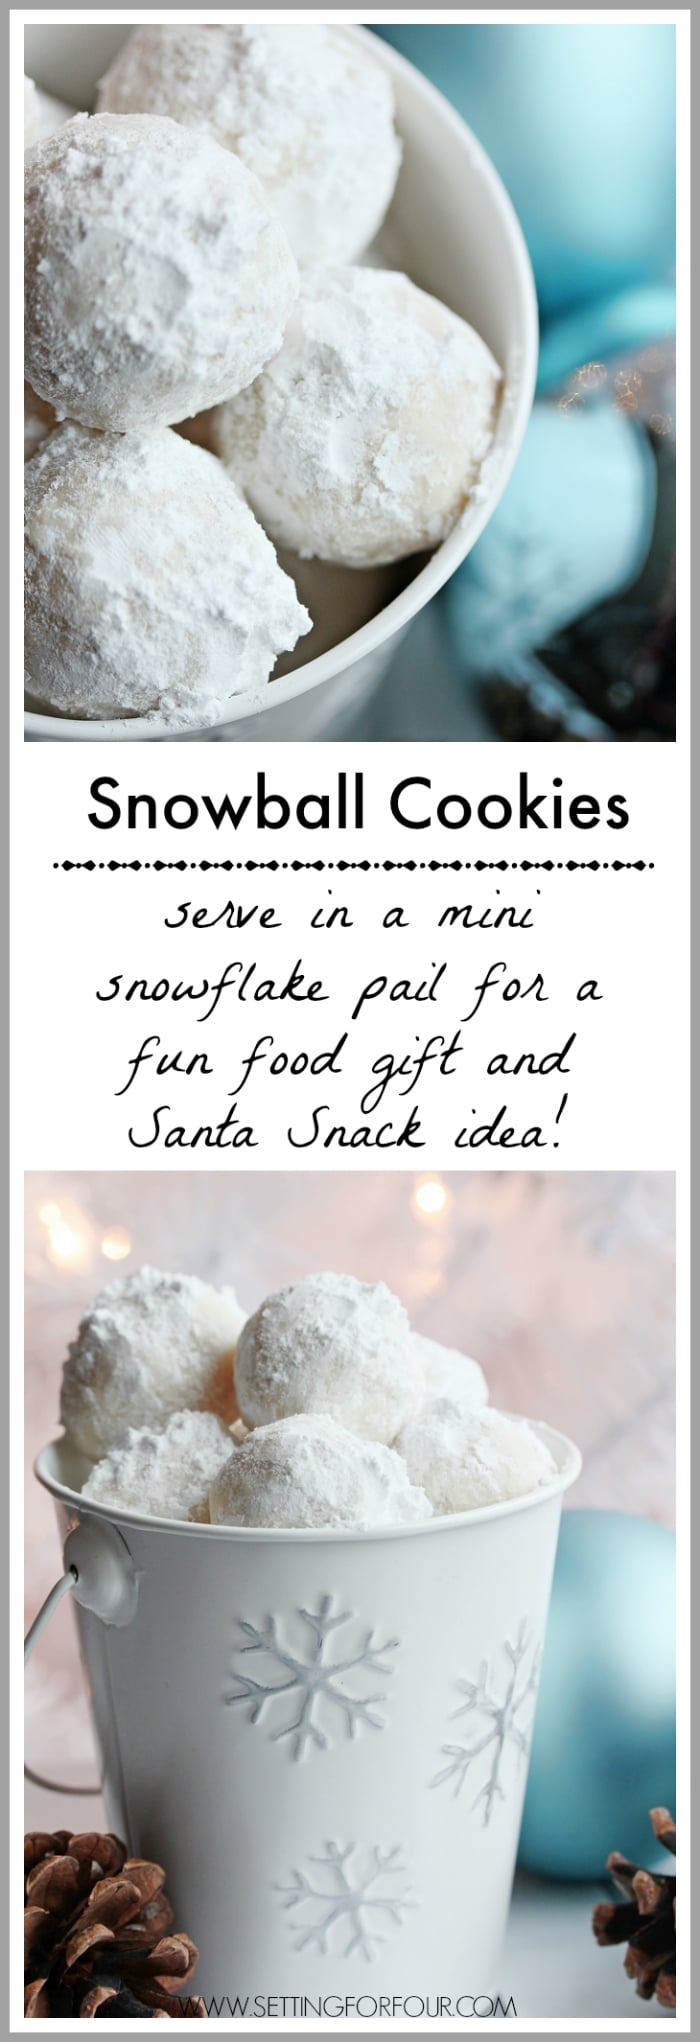 Yummy Snowball Cookies recipe - fun food gift and Santa Snack idea to make for Christmas! www.settingforfour.com